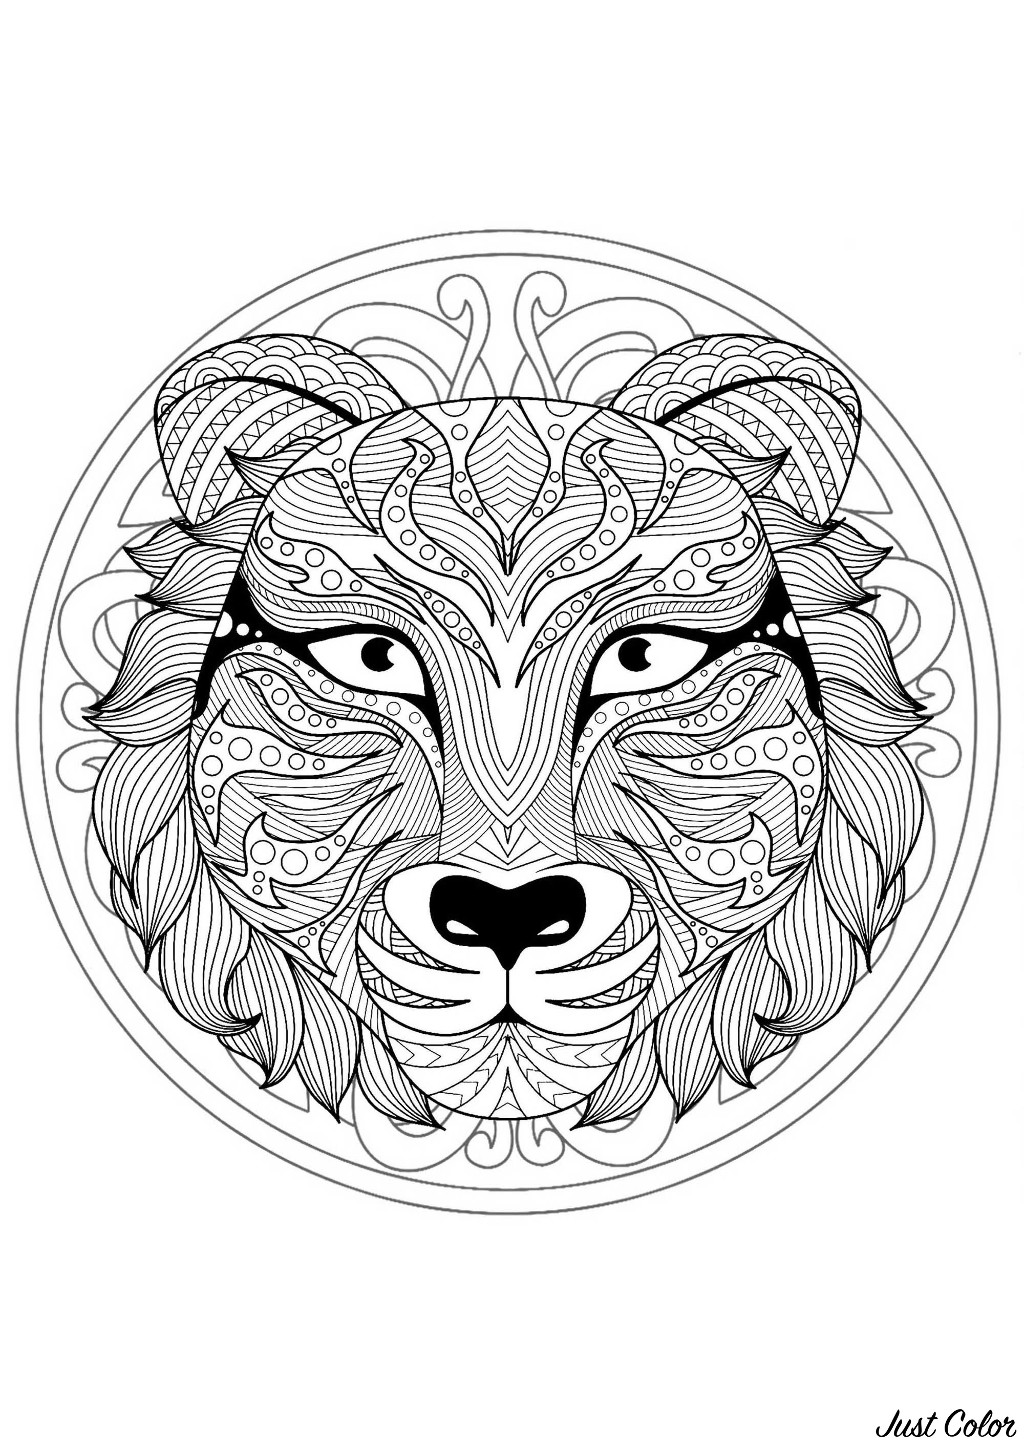 Mandala to color with very gorgeous Tiger head and beautiful interlaced patterns in background